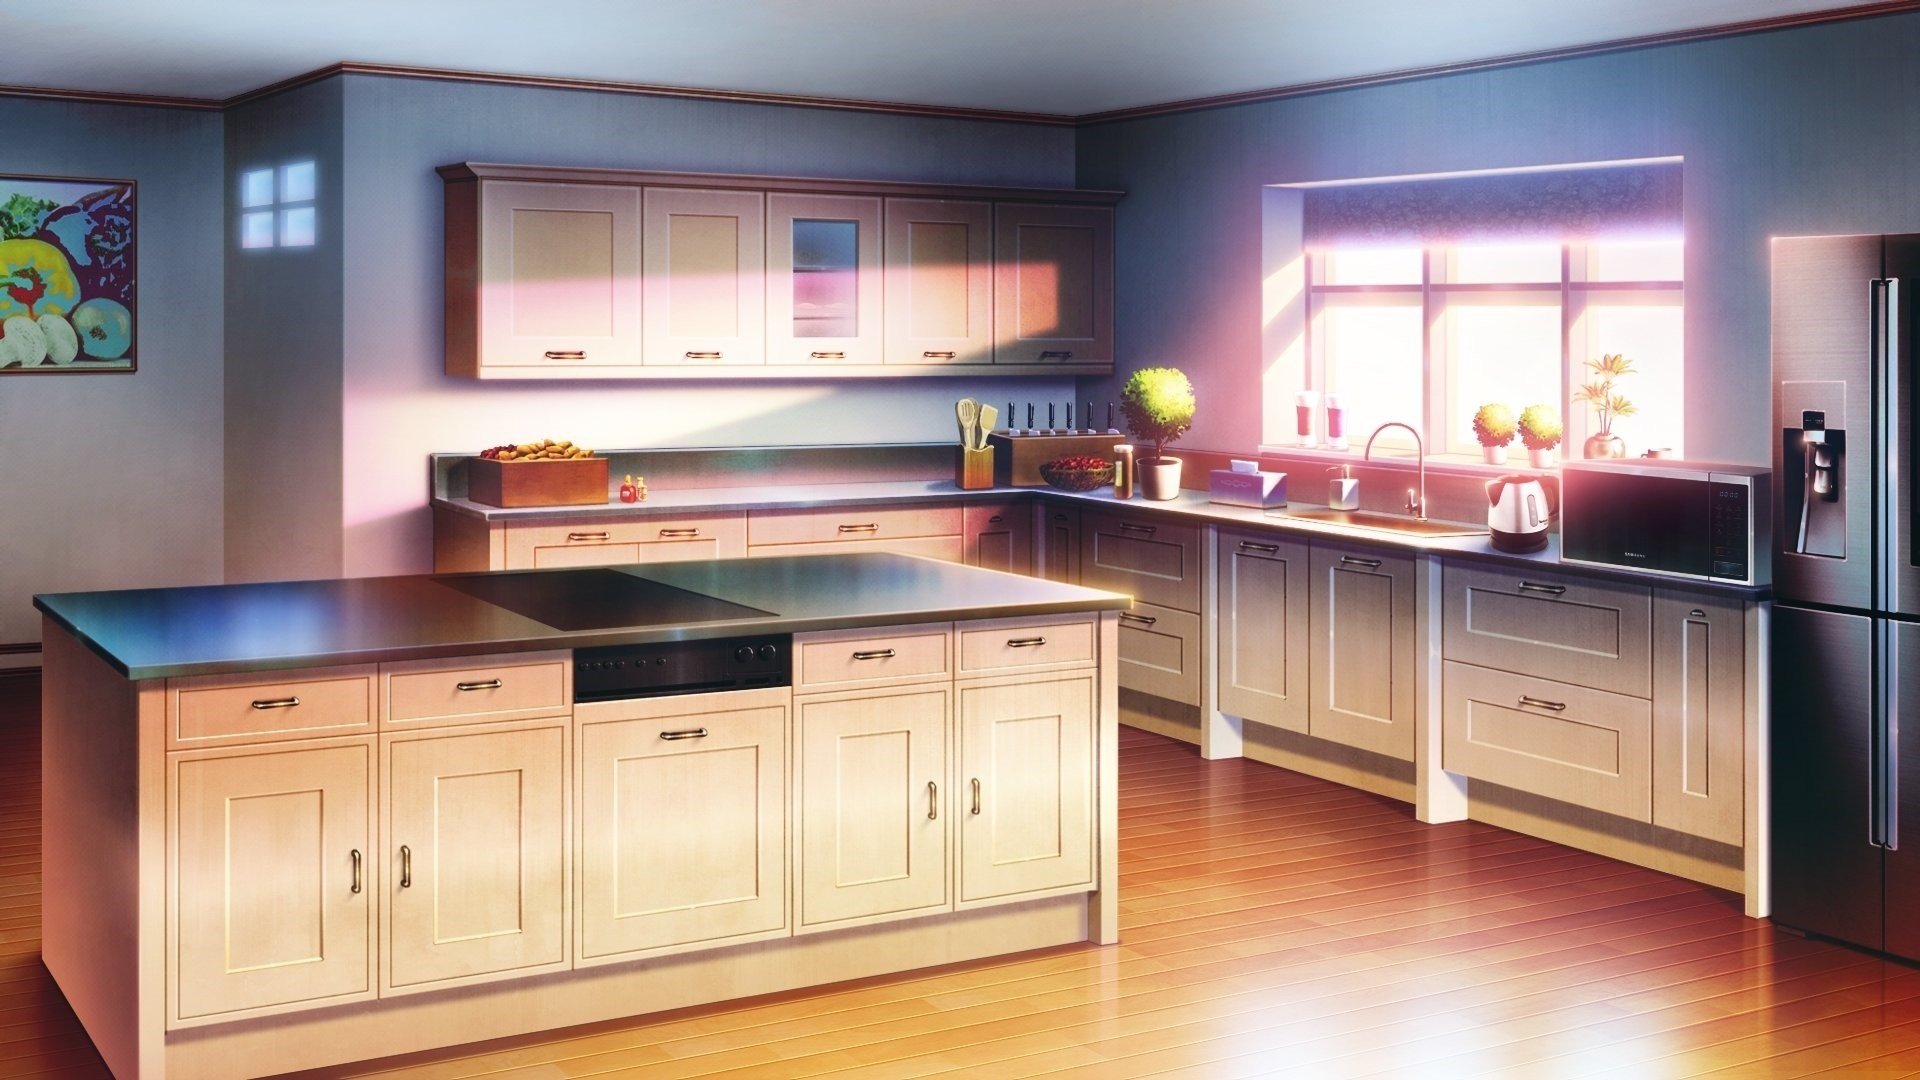 Anime Kitchen Free Wallpaper